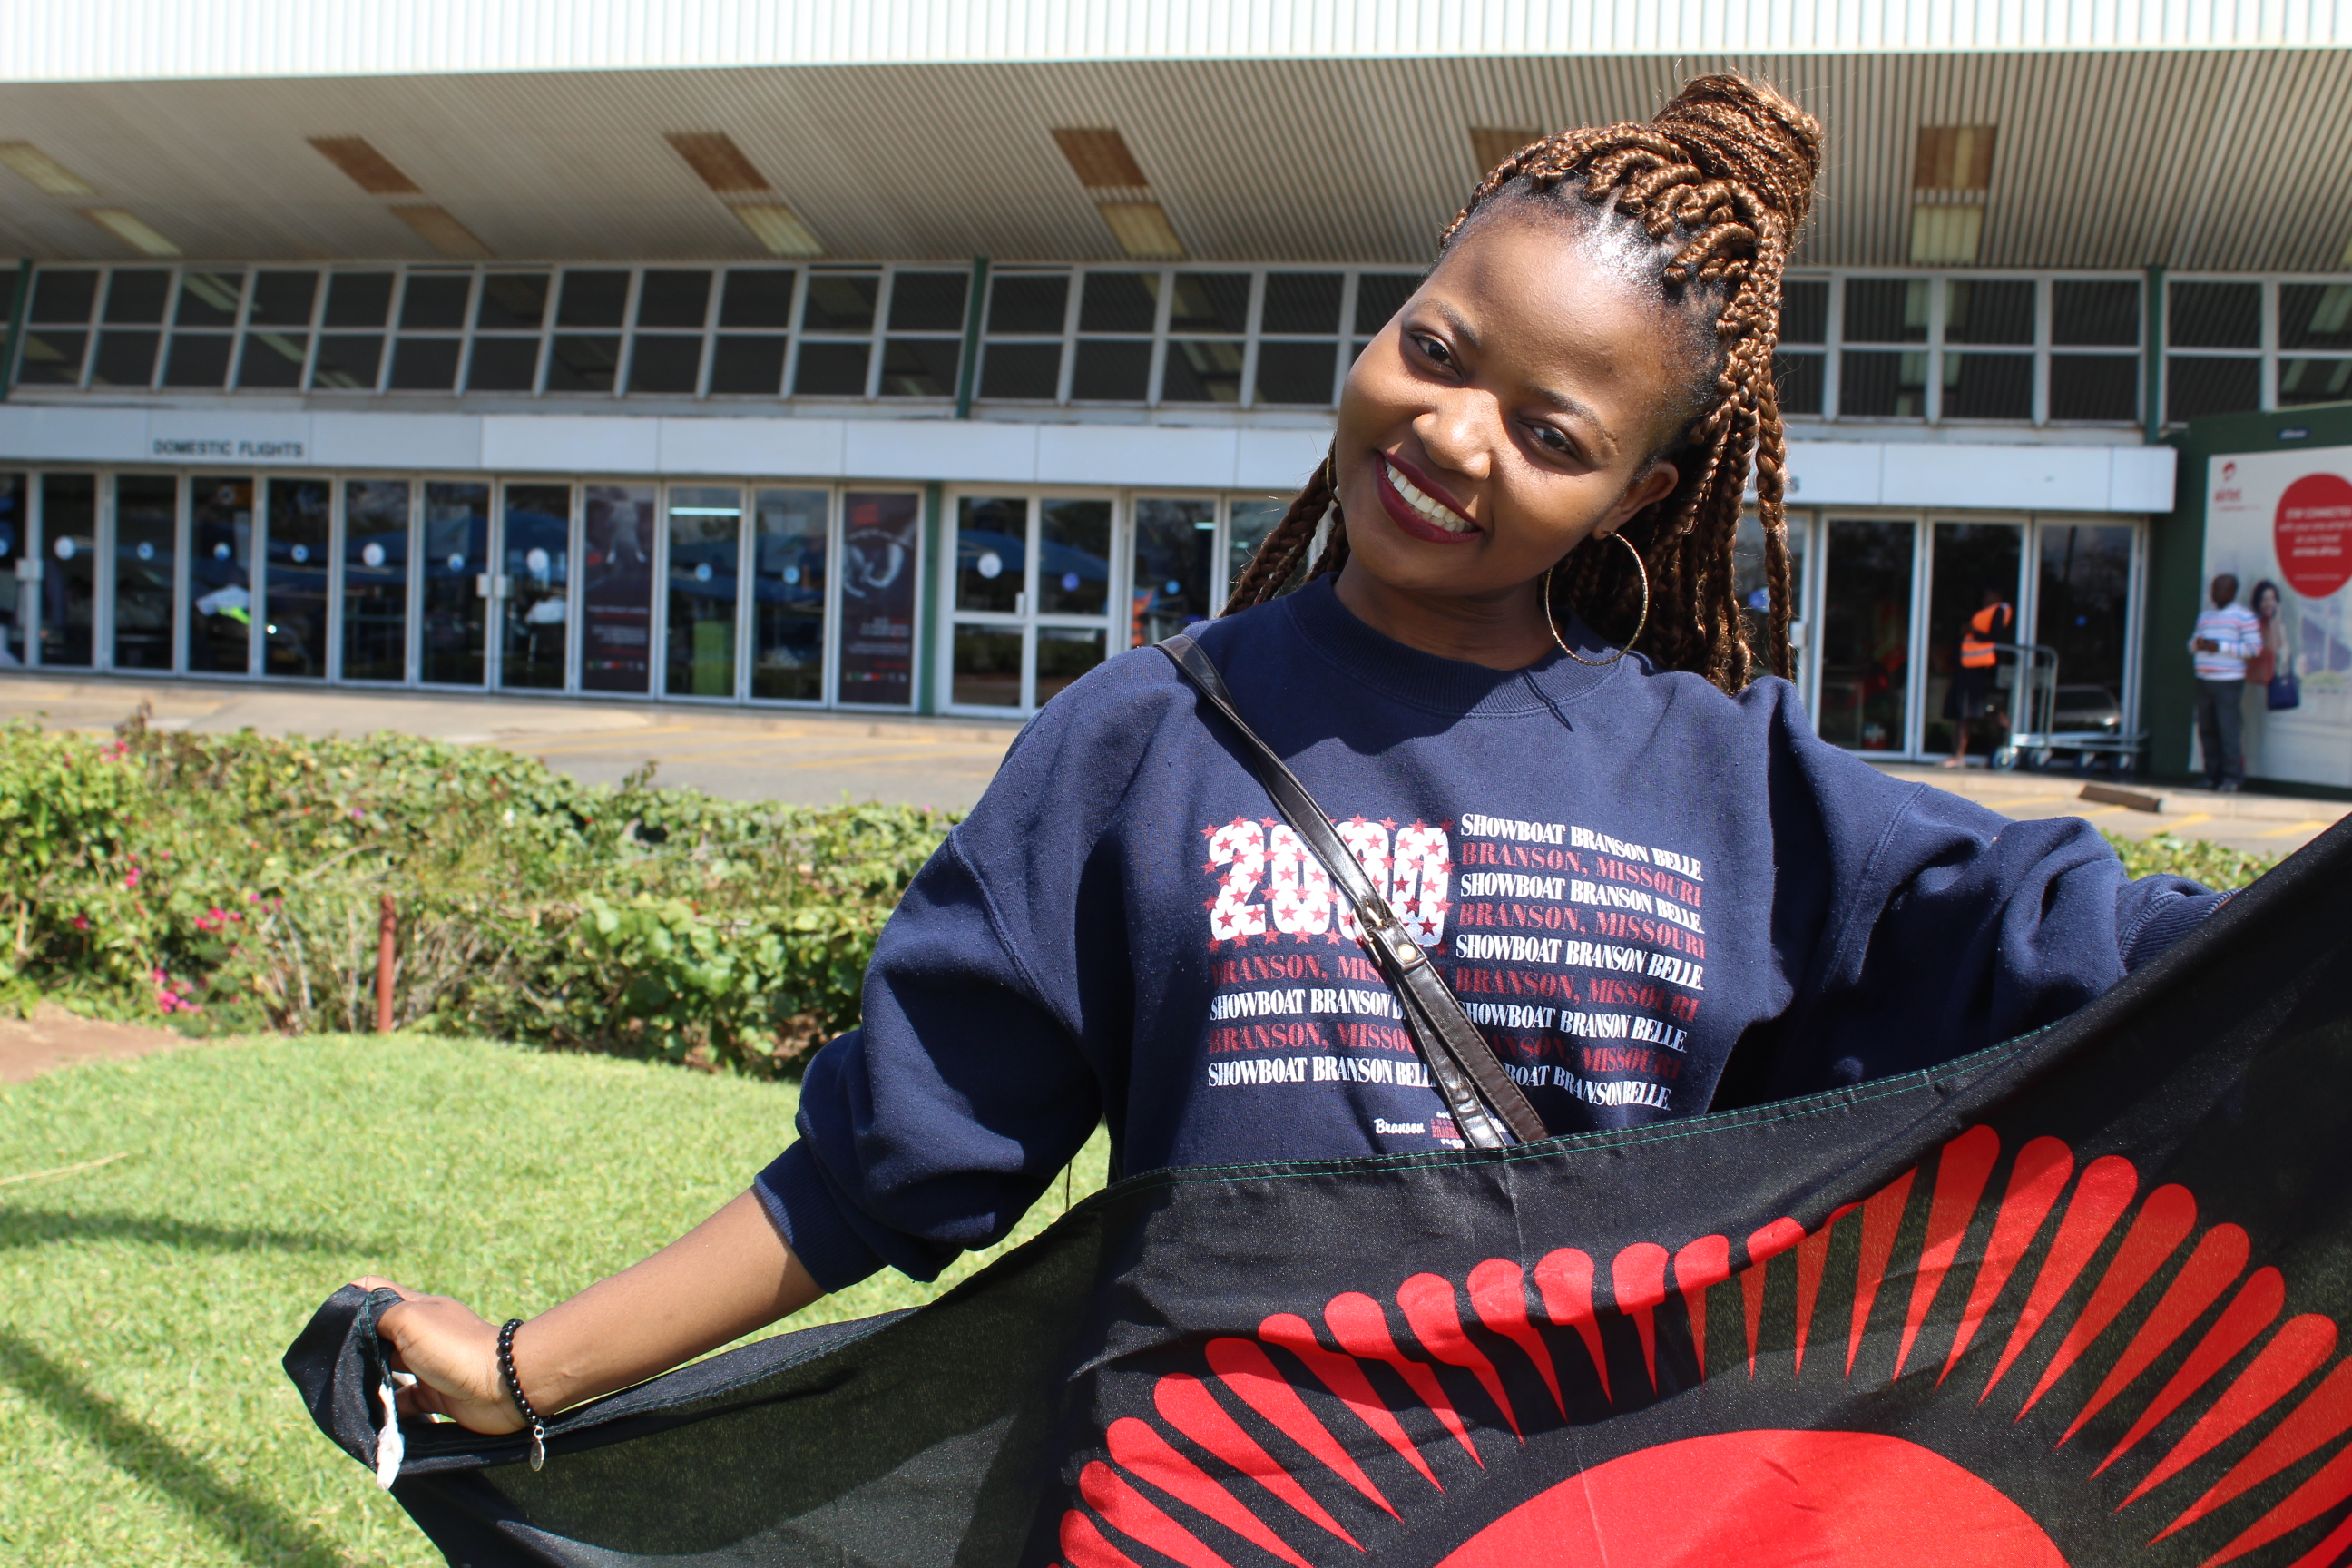 UNIMA FLIES STUDENT TO 2018 WORLD CUP IN RUSSIA